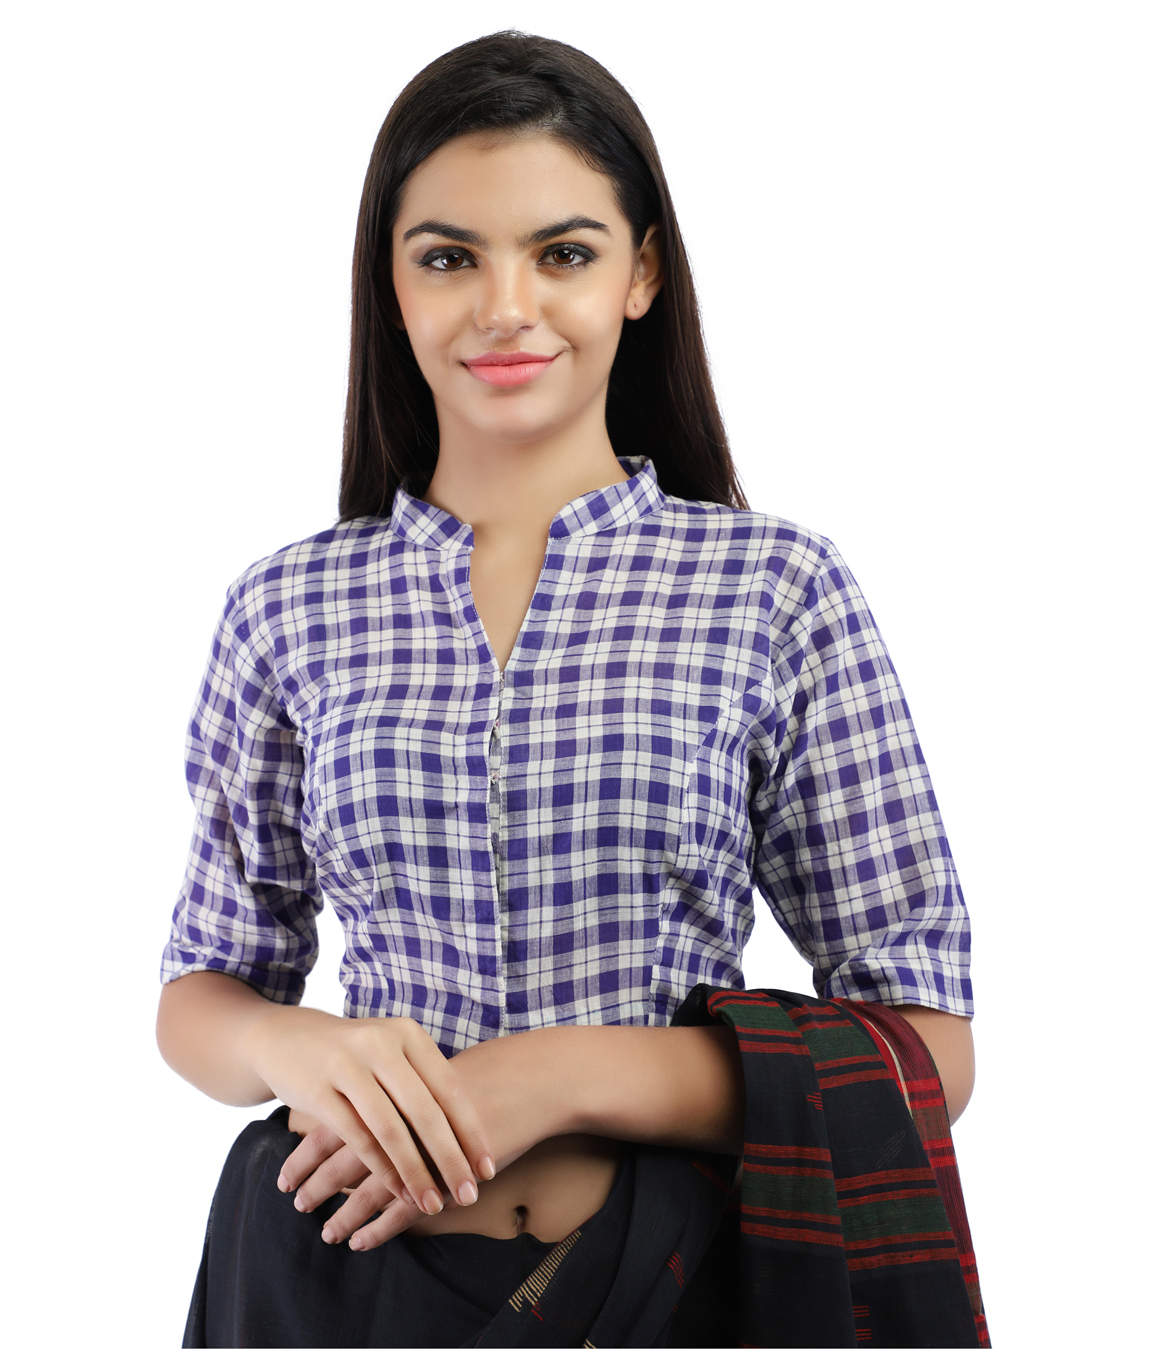 Pure Cotton Handloom Checks Blouse in Purple and White Band Collar With Hook Closure on Front(PURPLE & WHITE CHECKS)